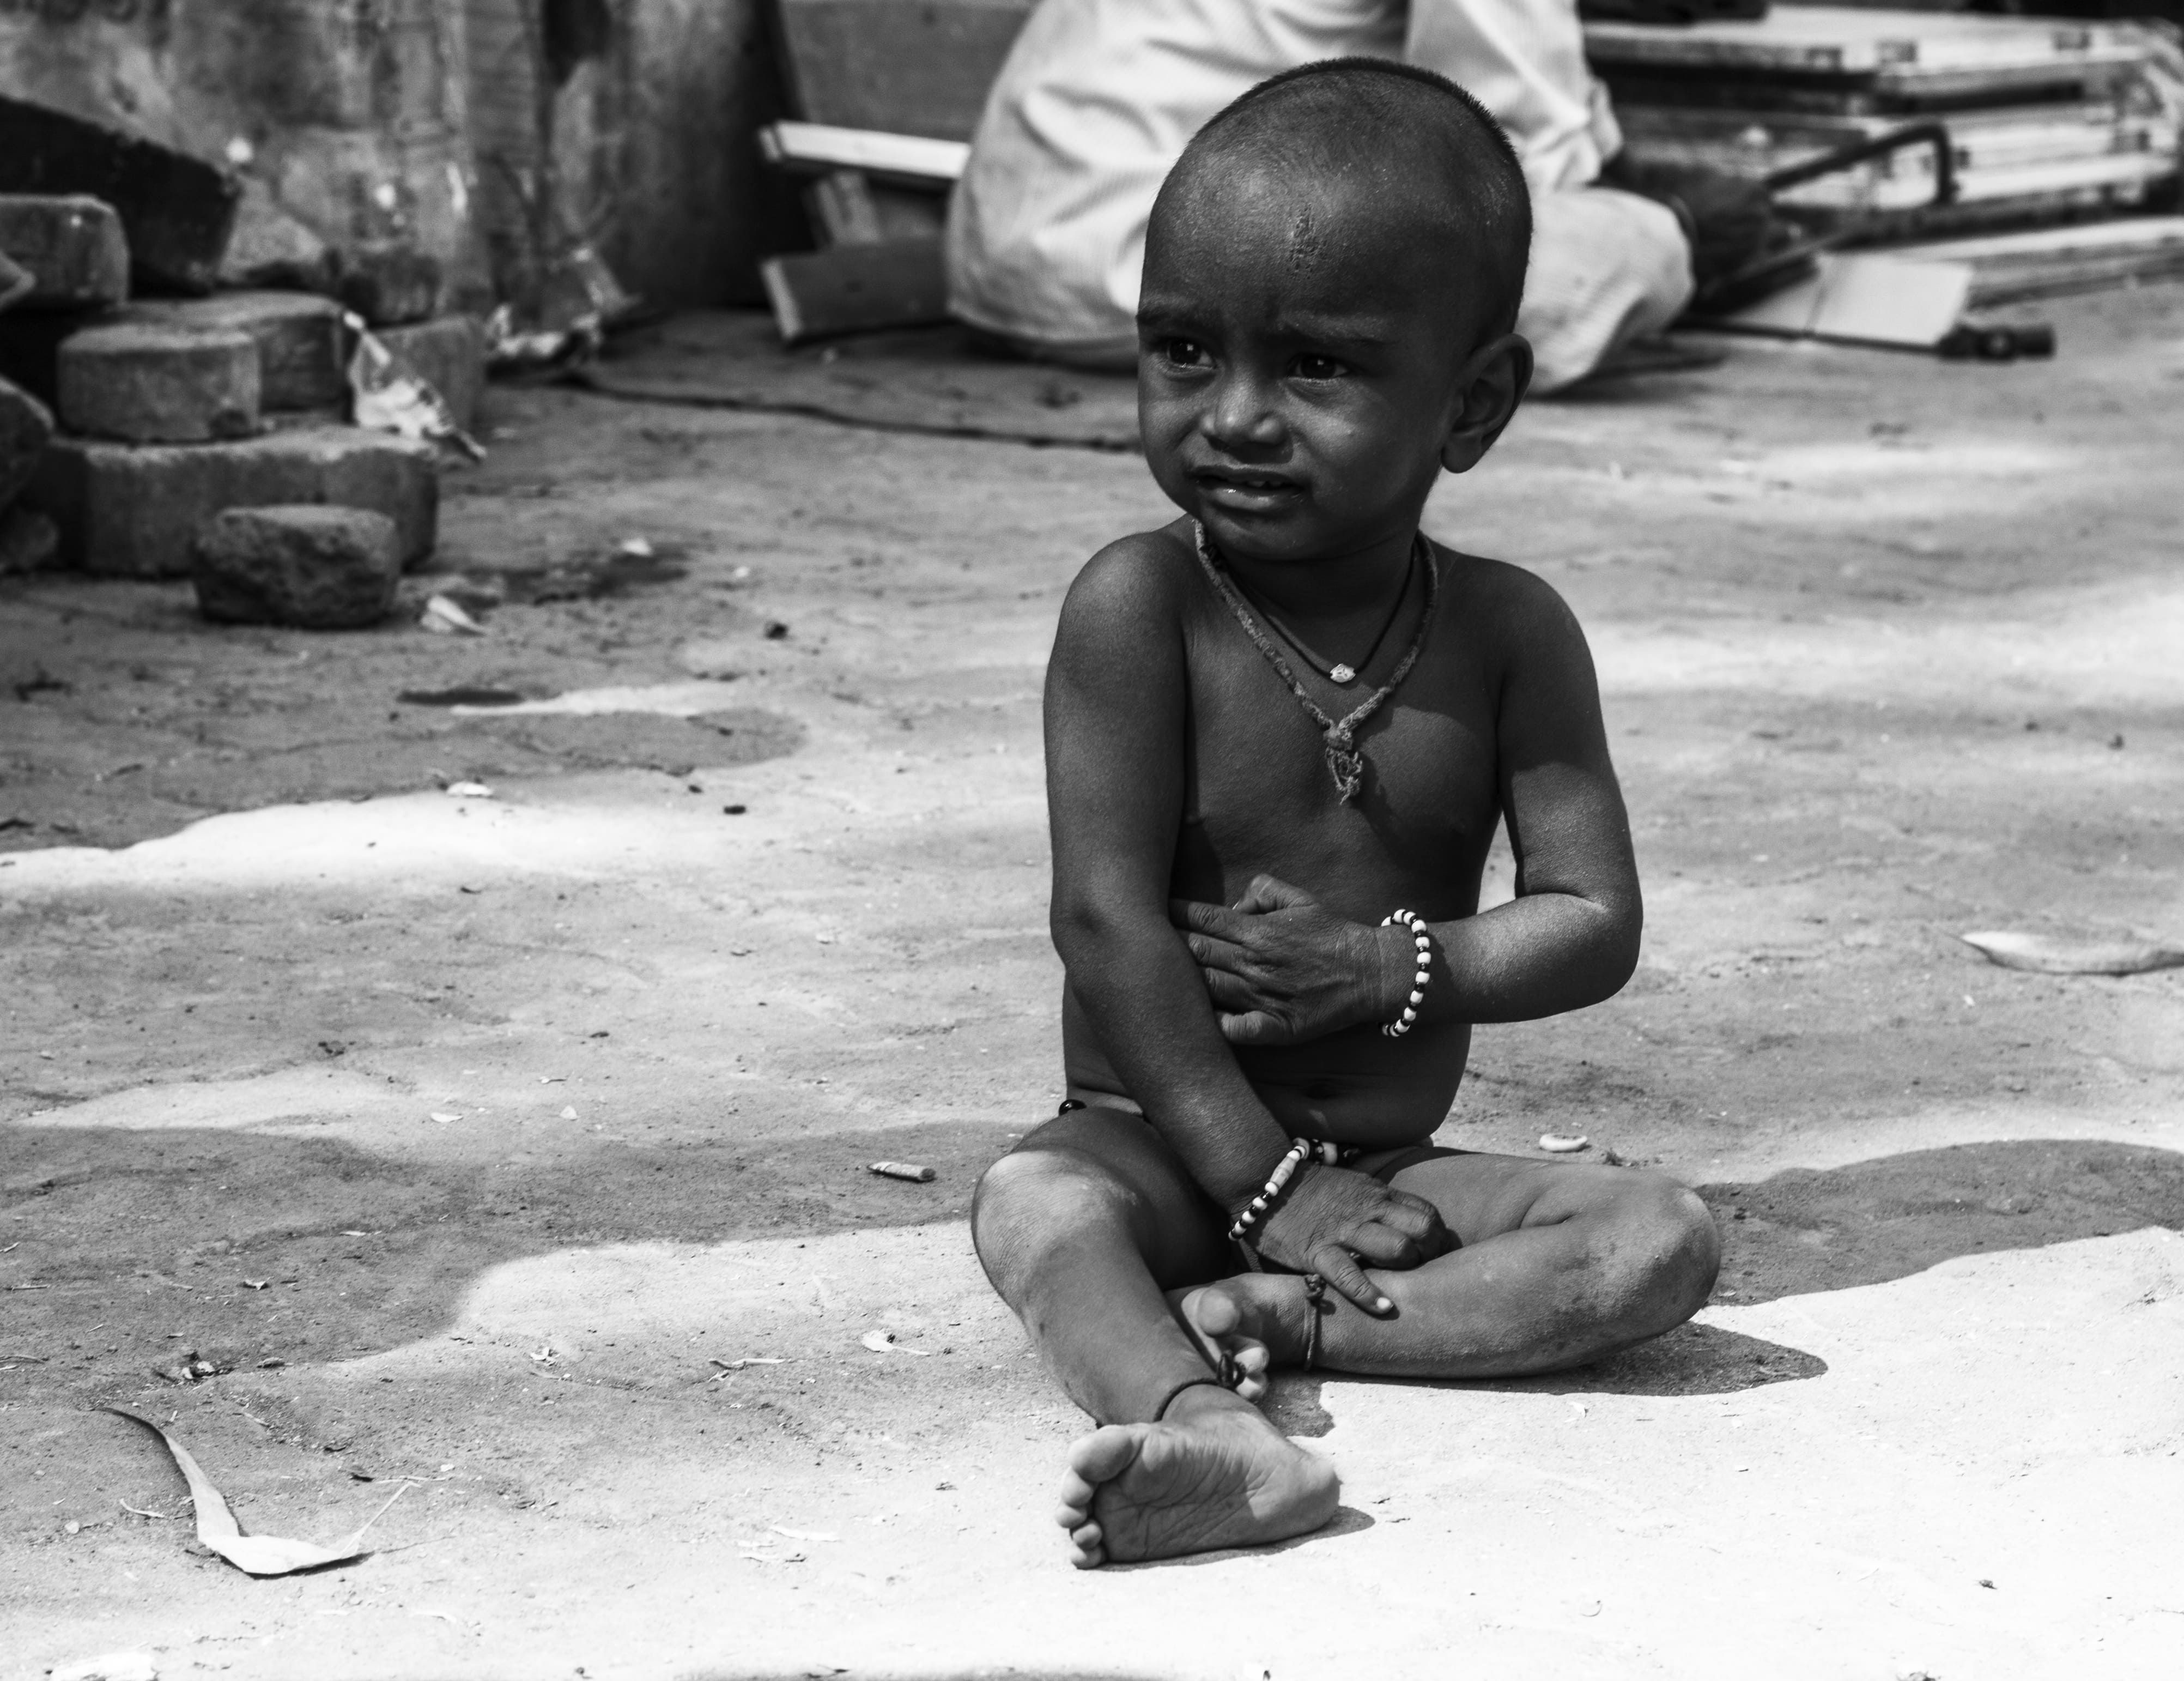 Indian baby black and white photograph credit diploma in photography student sayan debnath